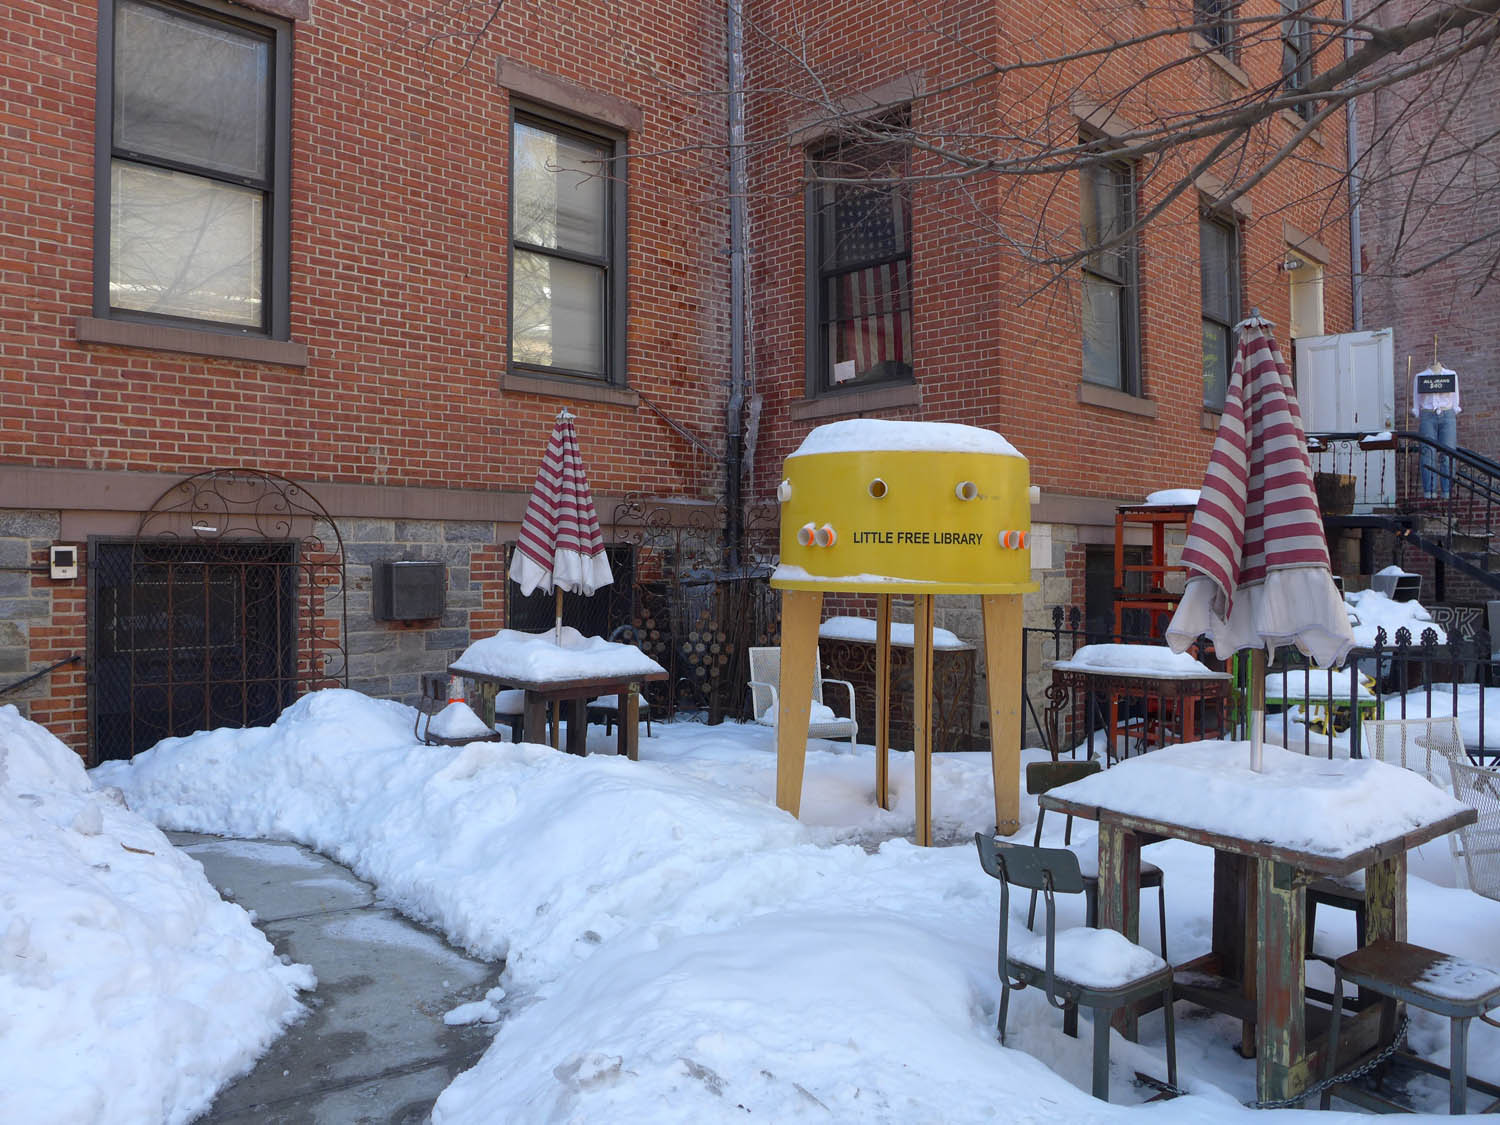 Passing the city's smallest library